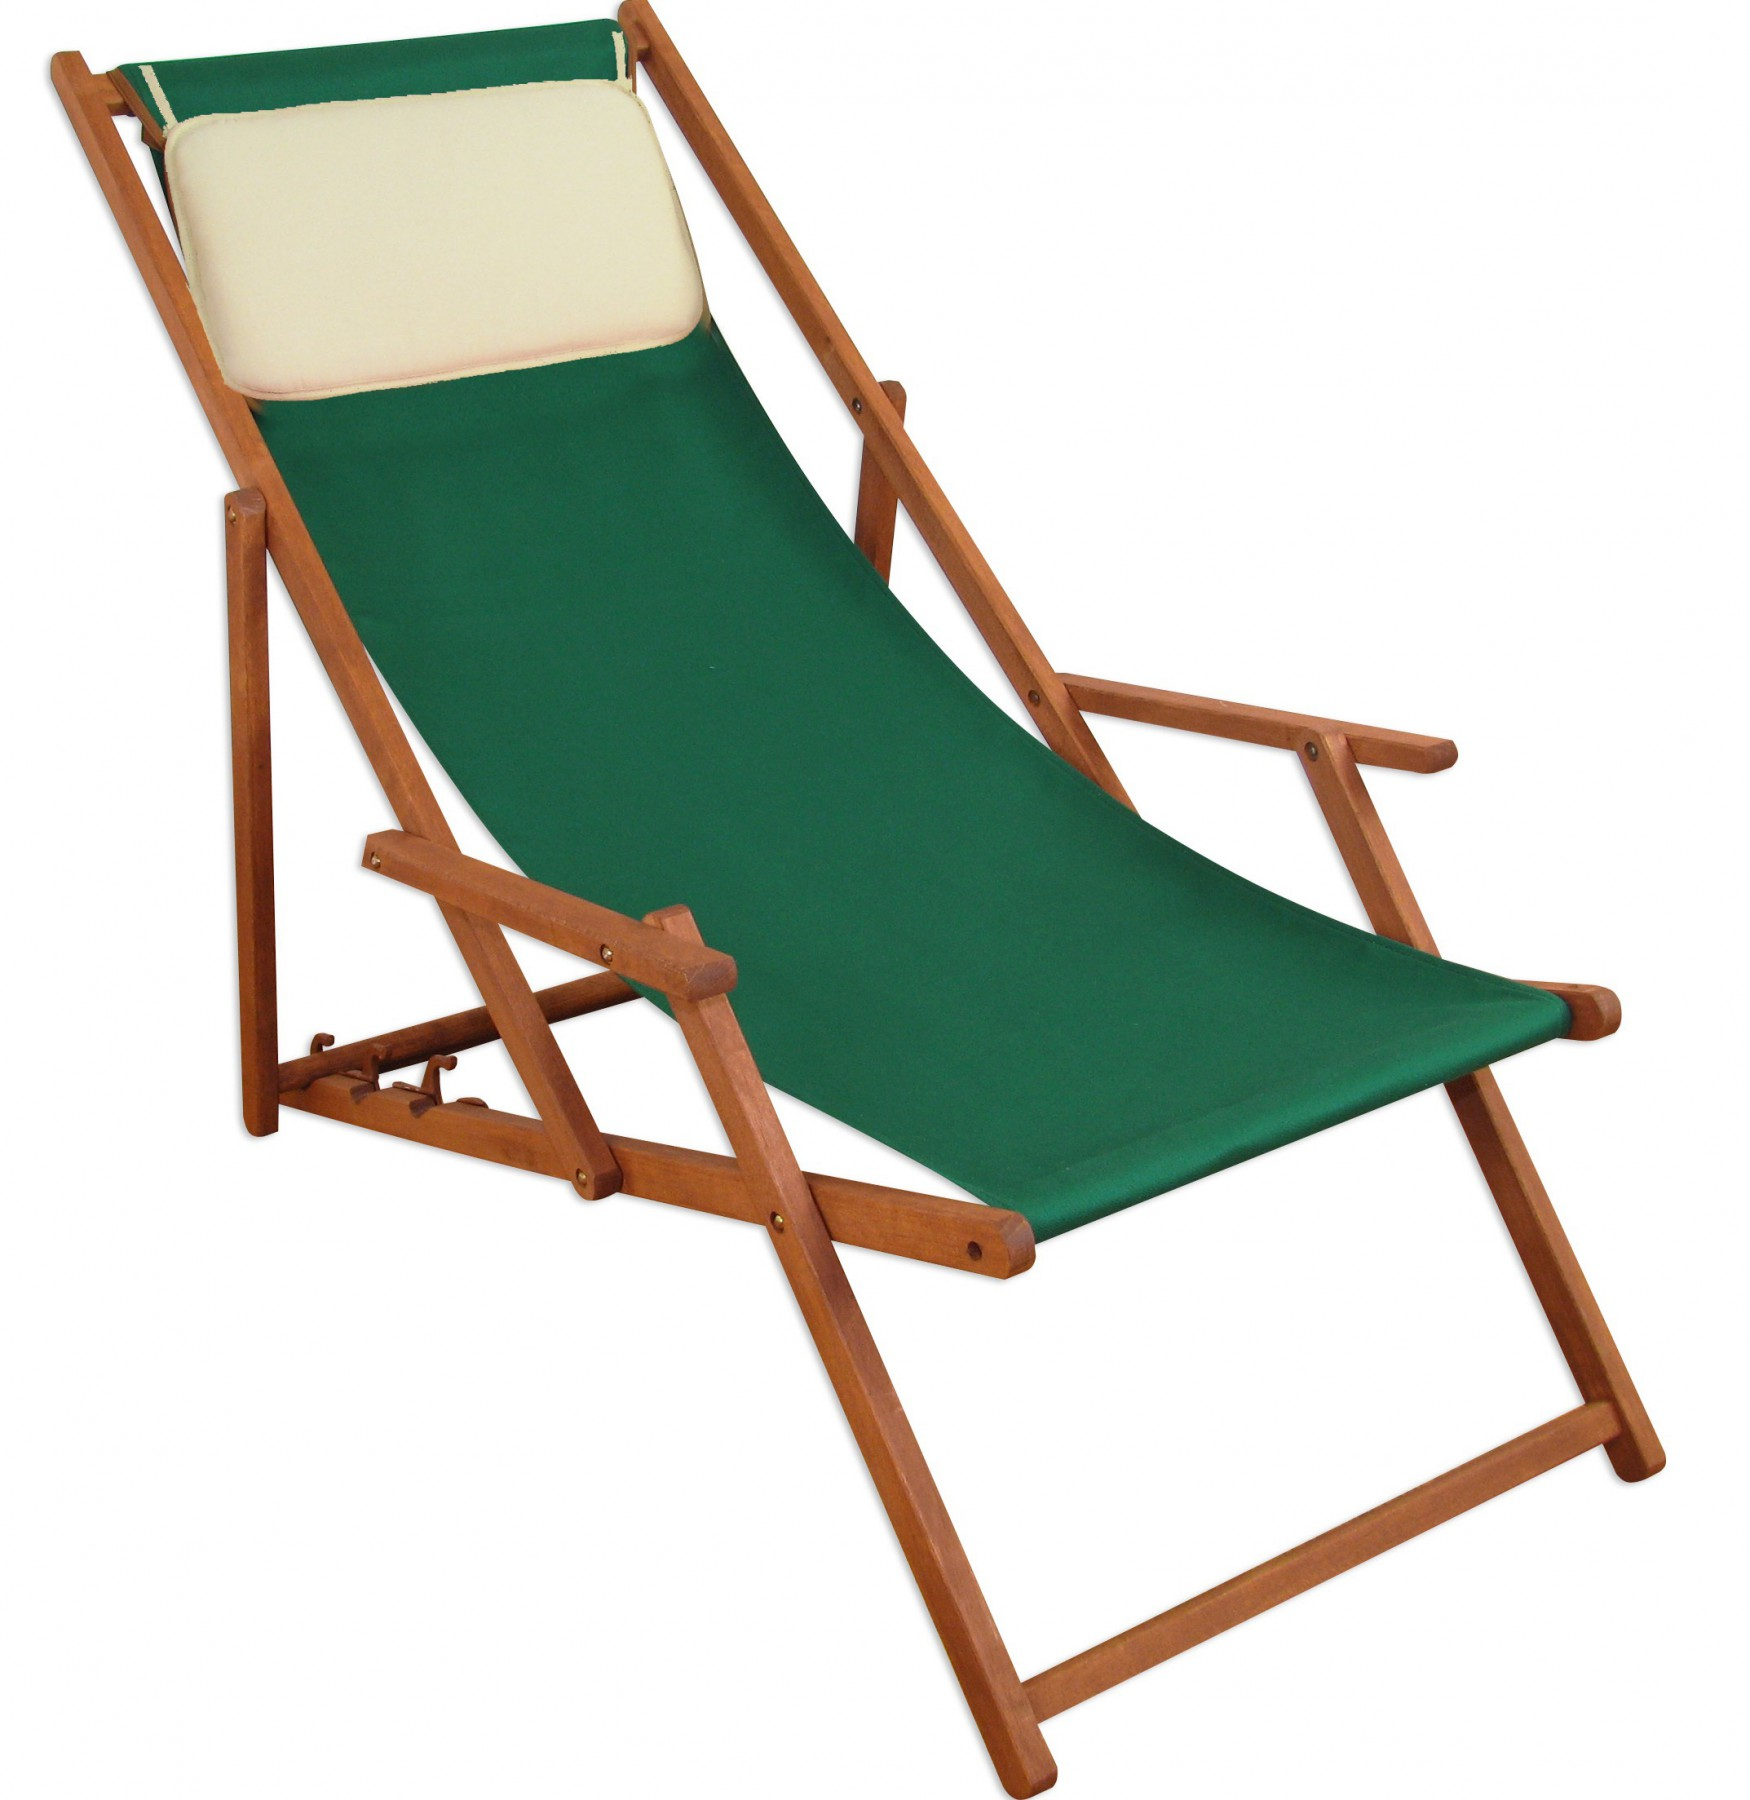 strandliege holz liegestuhl sonnenliege deckchair. Black Bedroom Furniture Sets. Home Design Ideas